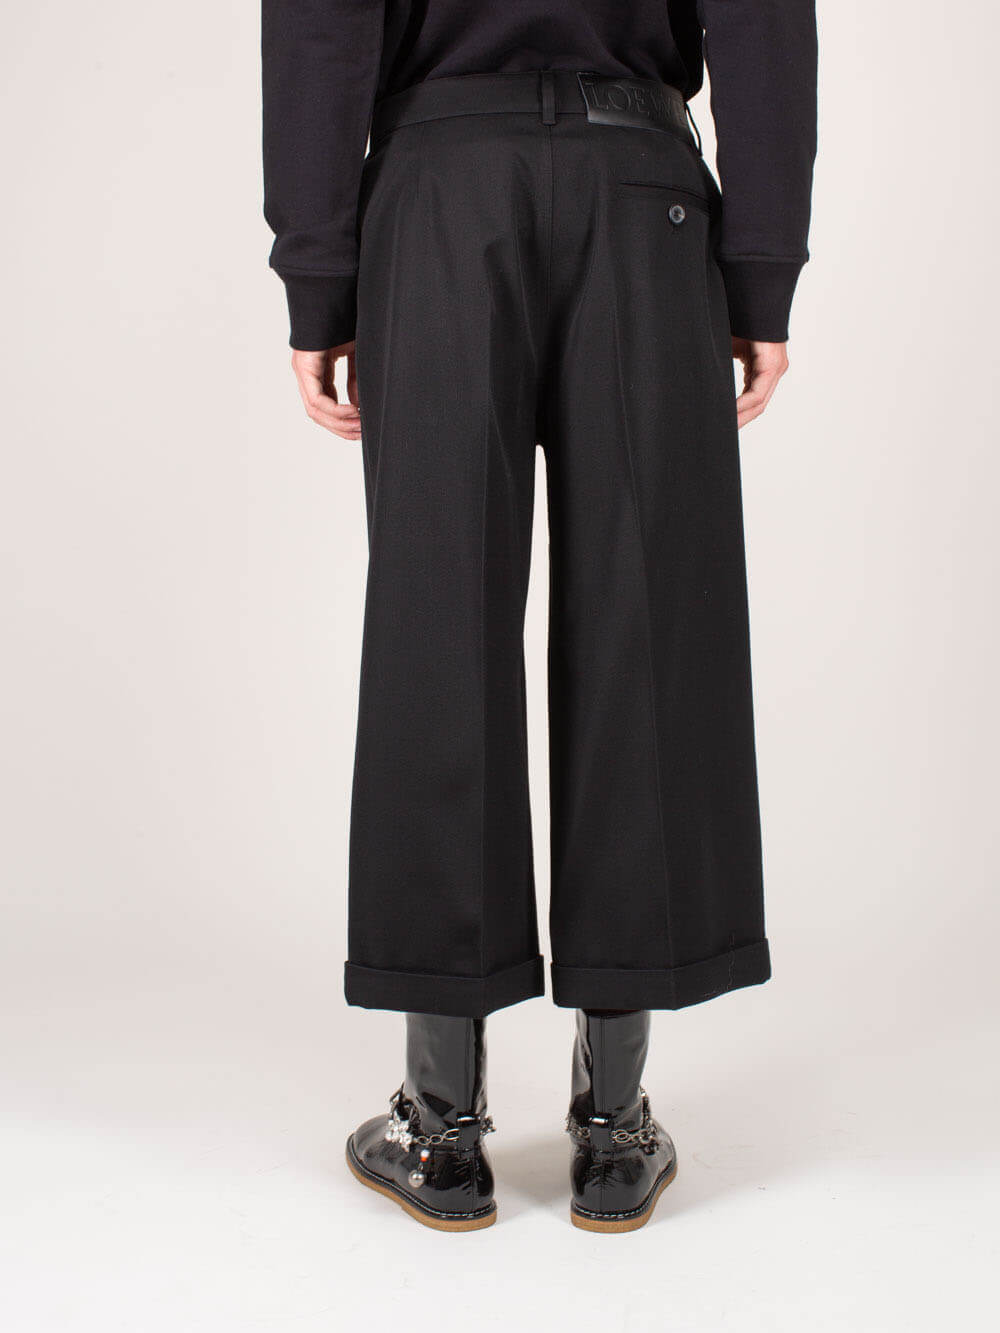 LOEWE Flared pants CROPPED FLARE TROUSERS BLACK